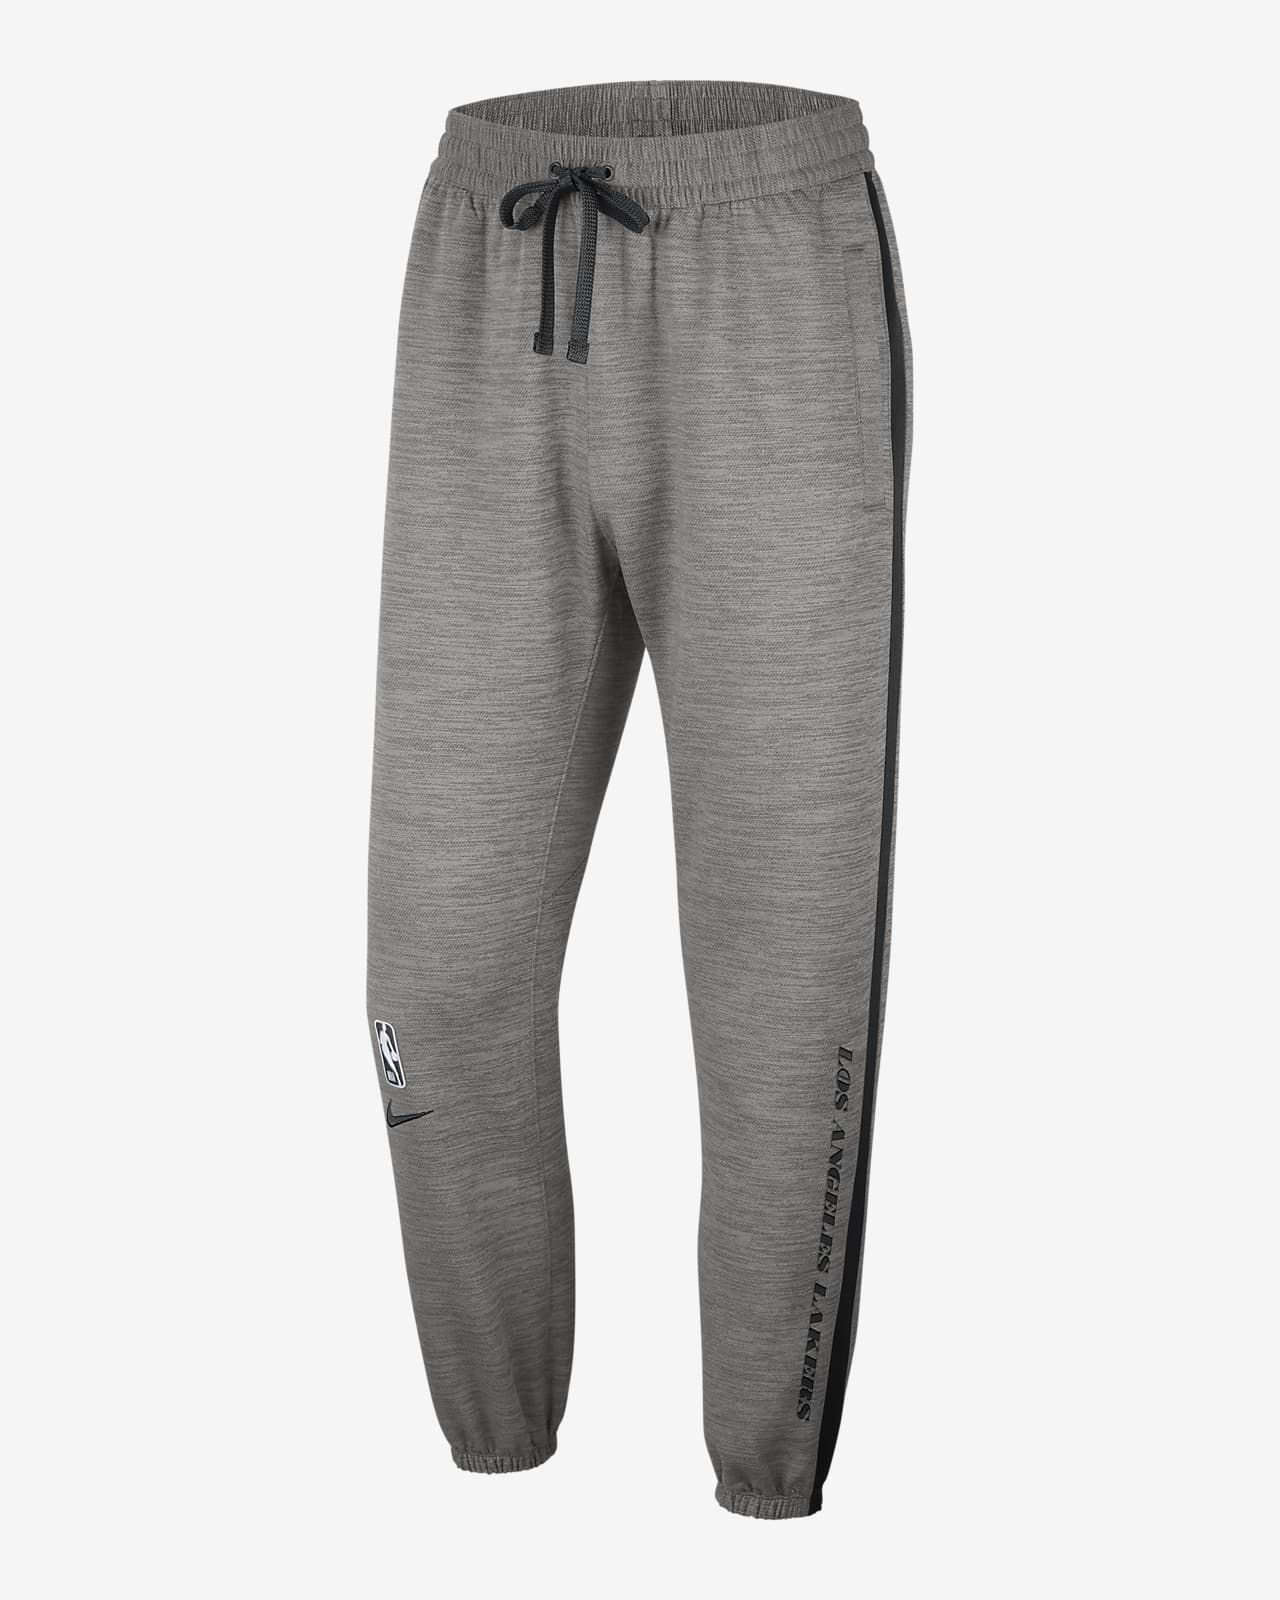 Los Angeles Lakers Showtime Nike Therma Flex NBA-Hose für Herren